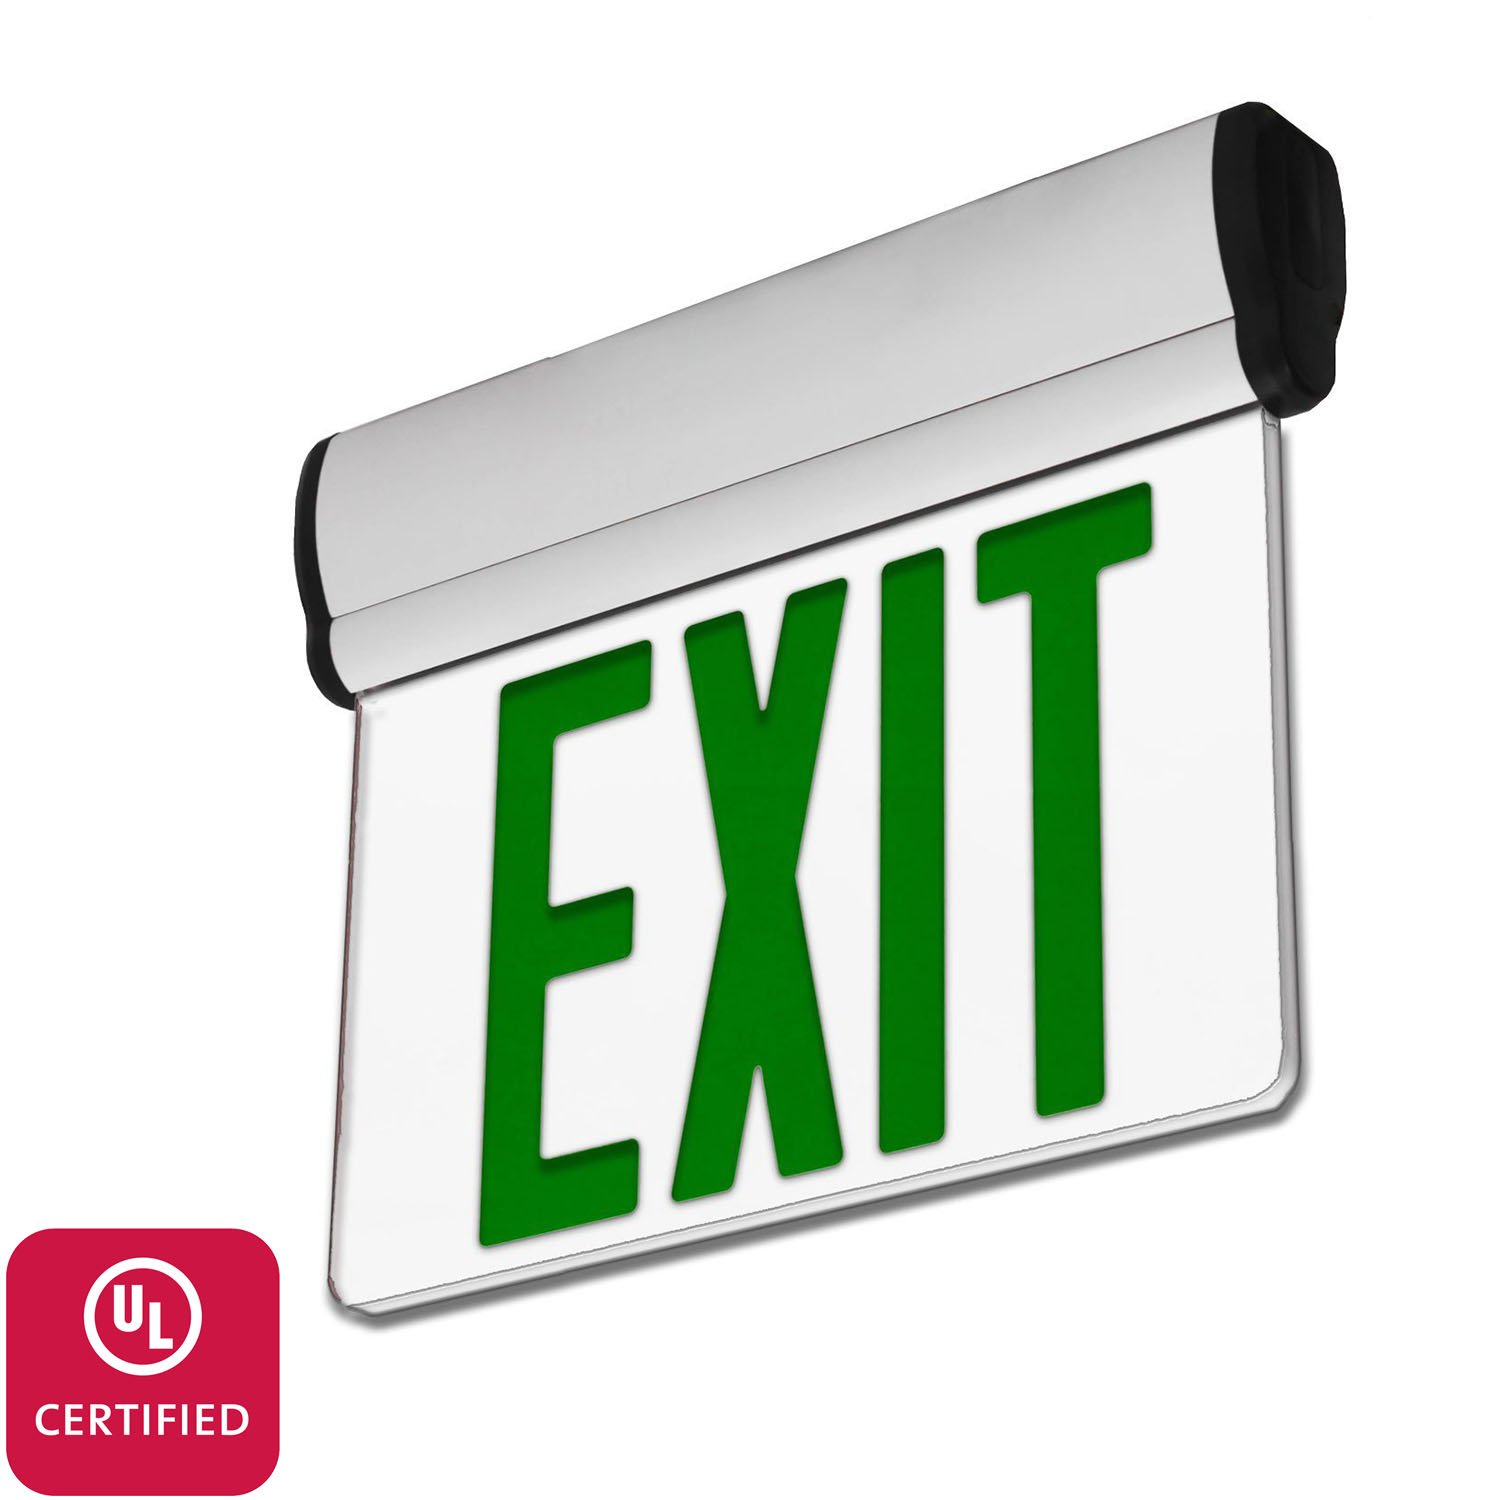 LFI Lights - UL Certified - Hardwired Edge Light Green LED Exit Sign - Rotating Panel - Battery Backup - ELRTG